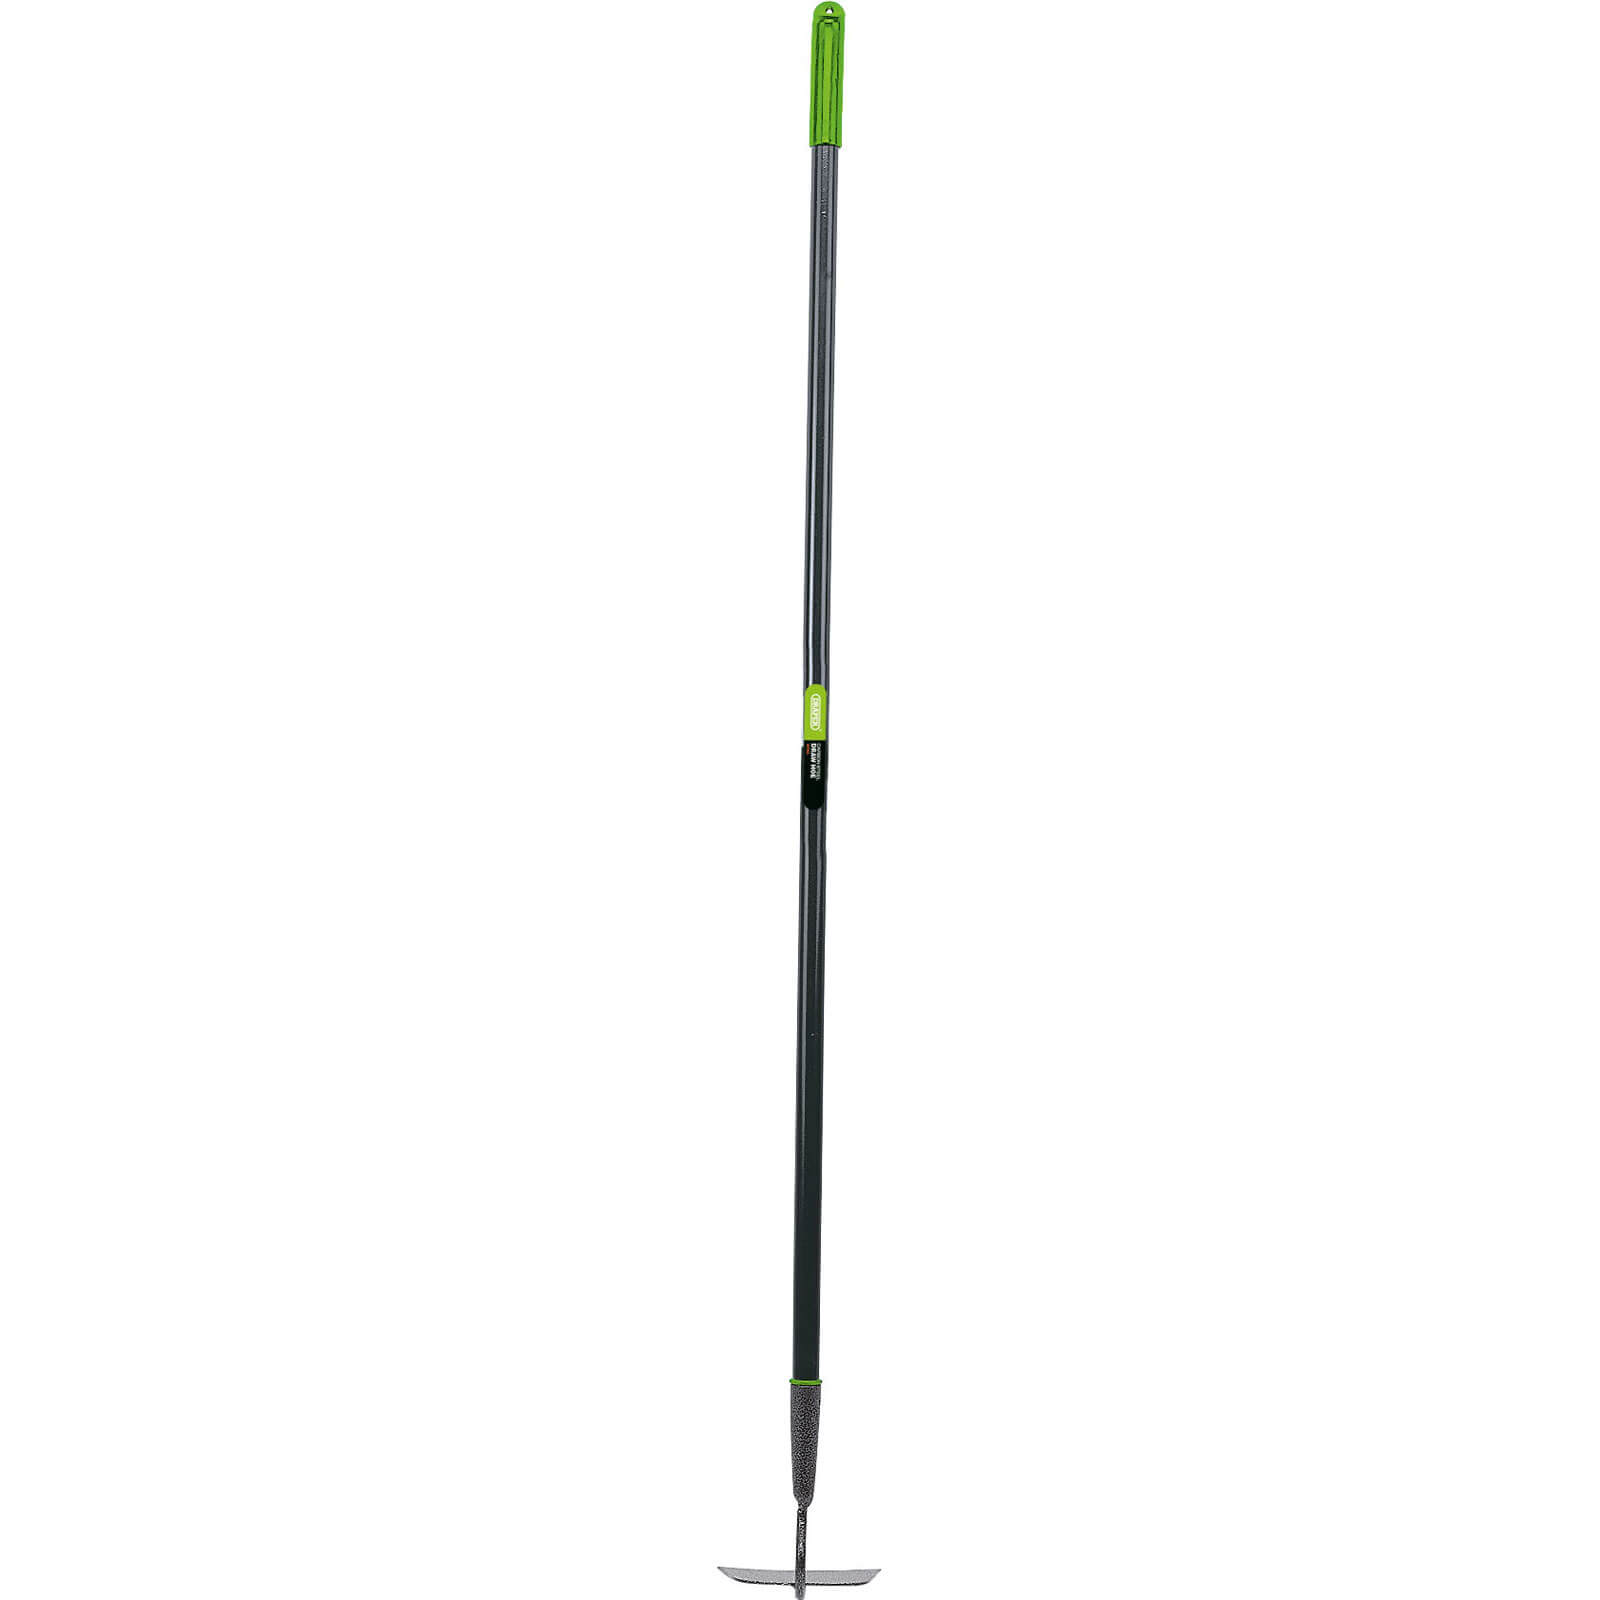 Image of Draper Carbon Steel Draw Hoe